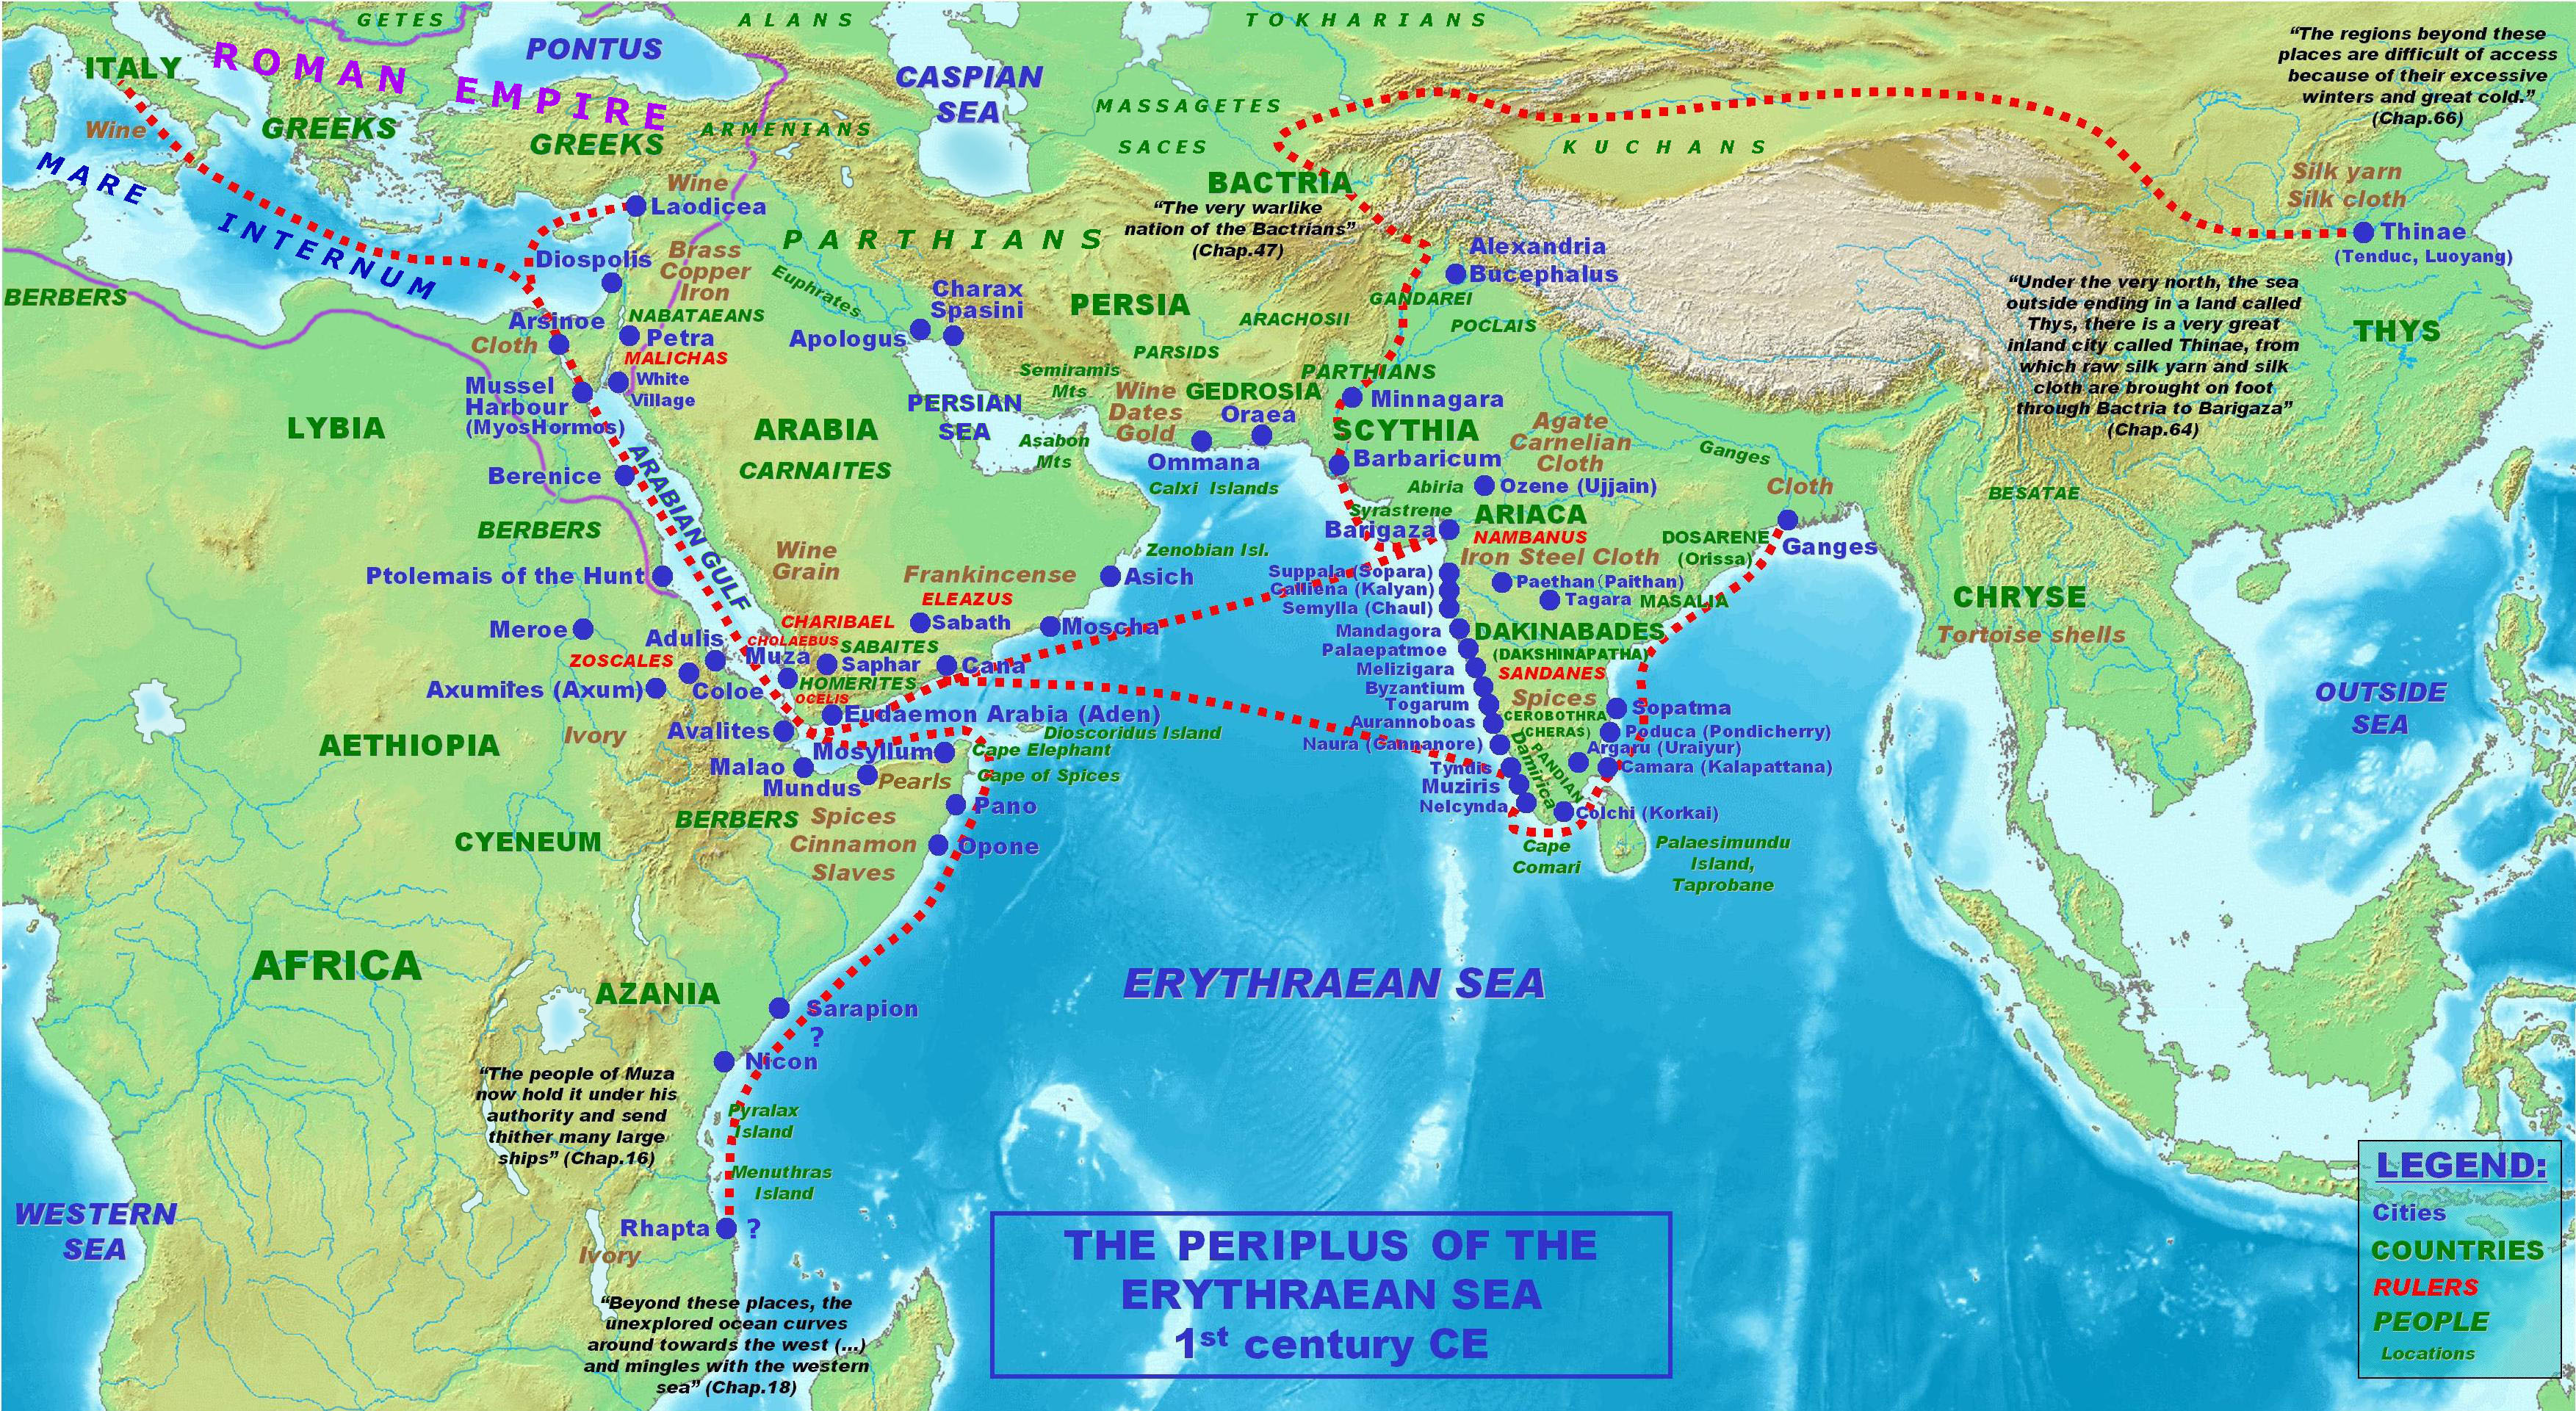 https://i0.wp.com/upload.wikimedia.org/wikipedia/commons/a/a5/Map_of_the_Periplus_of_the_Erythraean_Sea.jpg